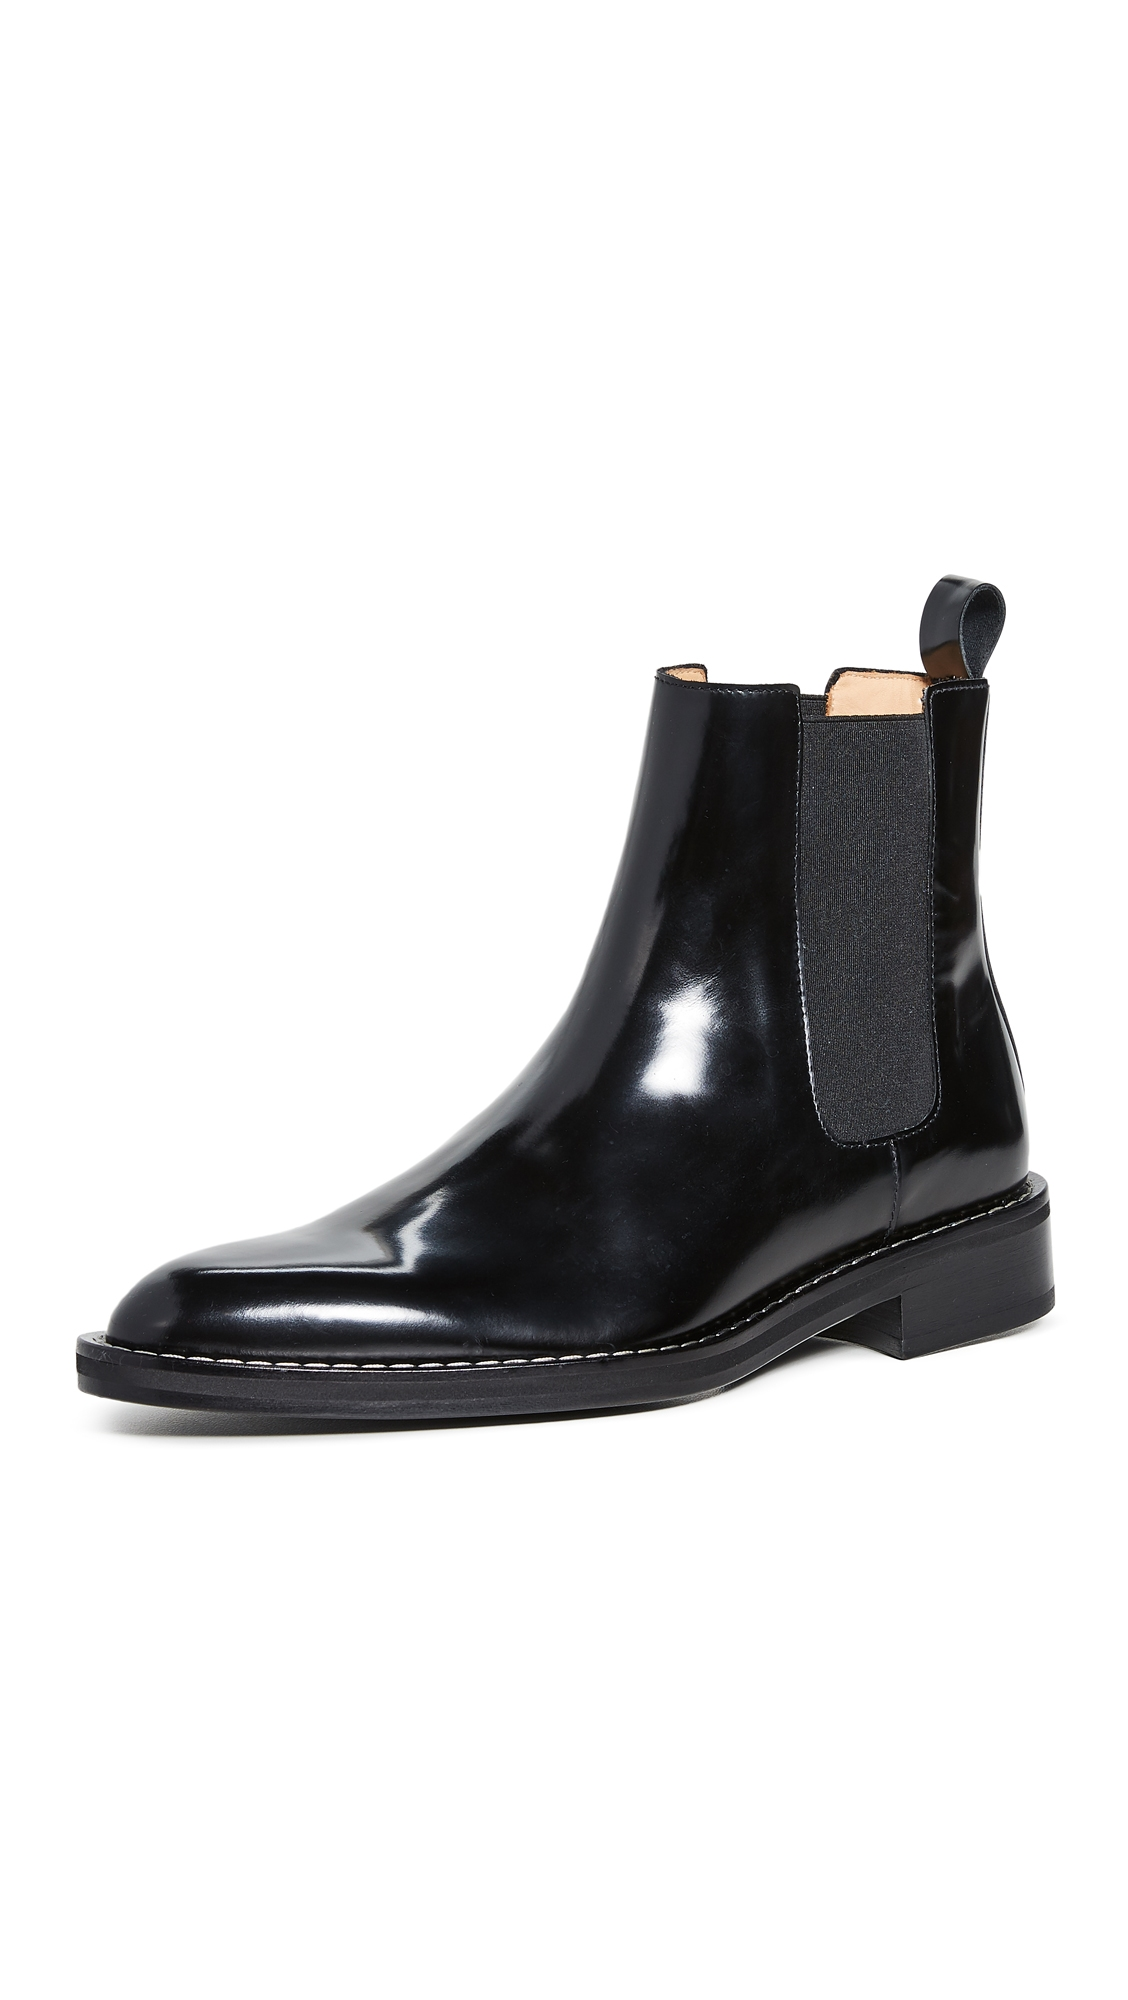 Ami Alexandre Mattiussi Welt-stitched Leather Chelsea Boots In 001 Noir